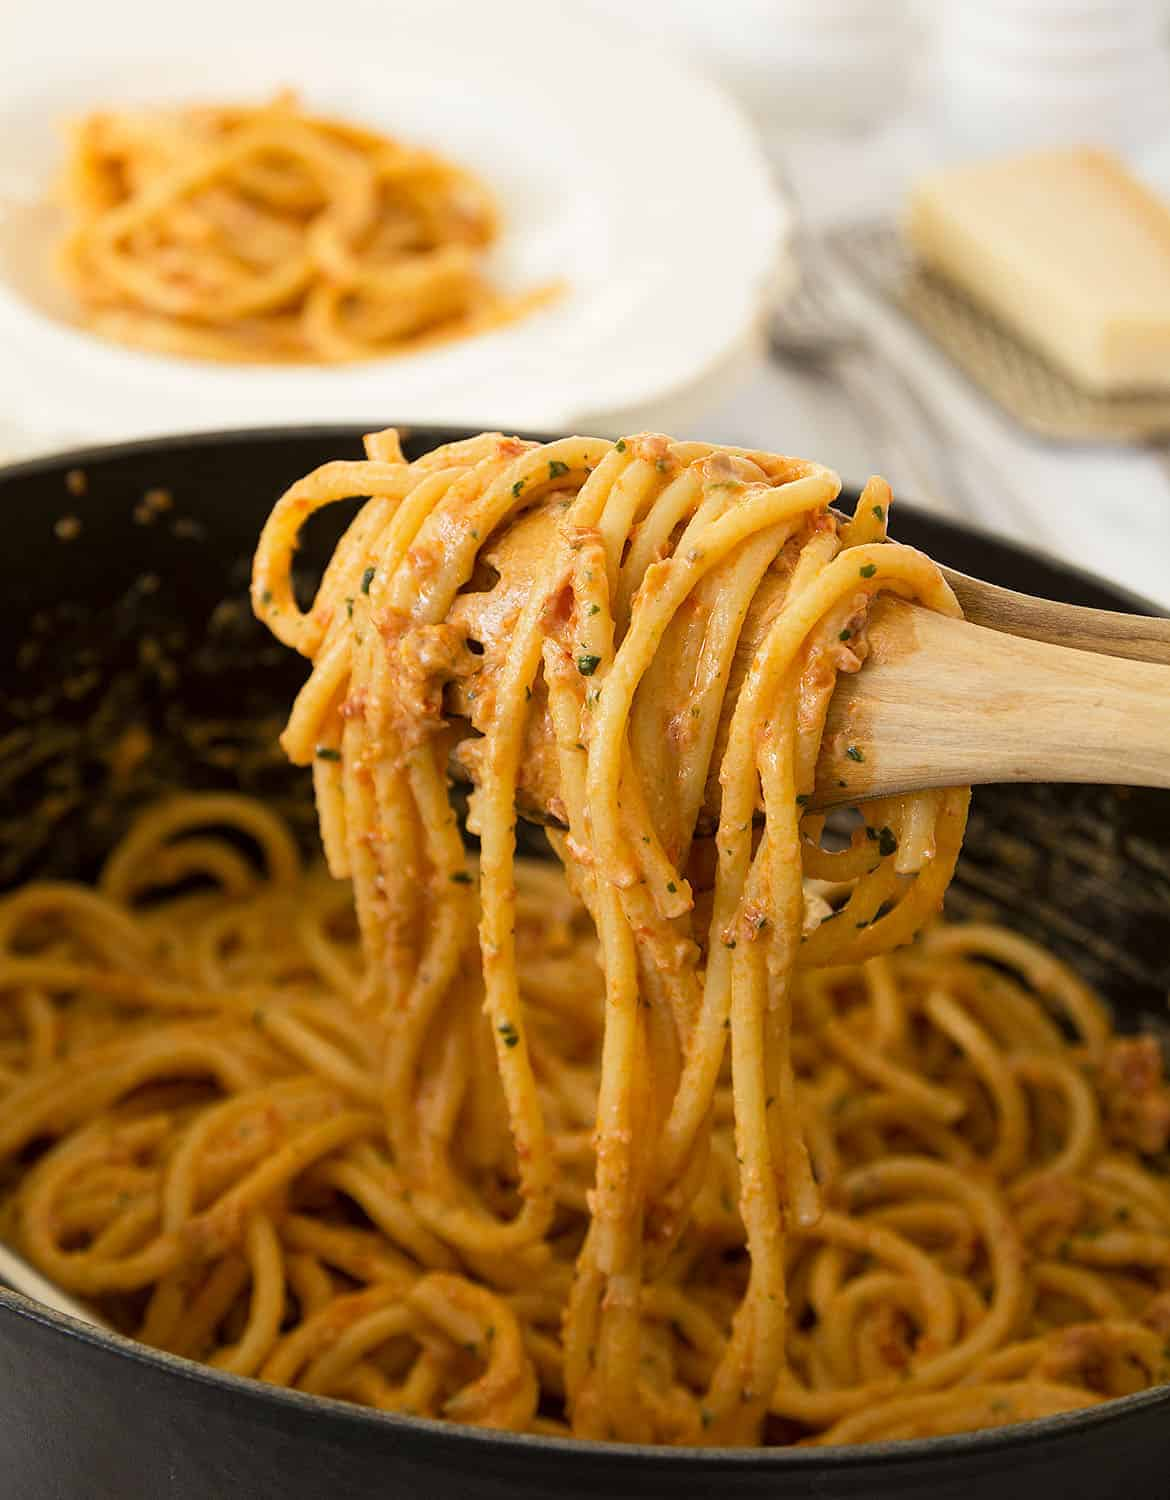 Two wooden spoons are lifting some red pesto spaghetti.